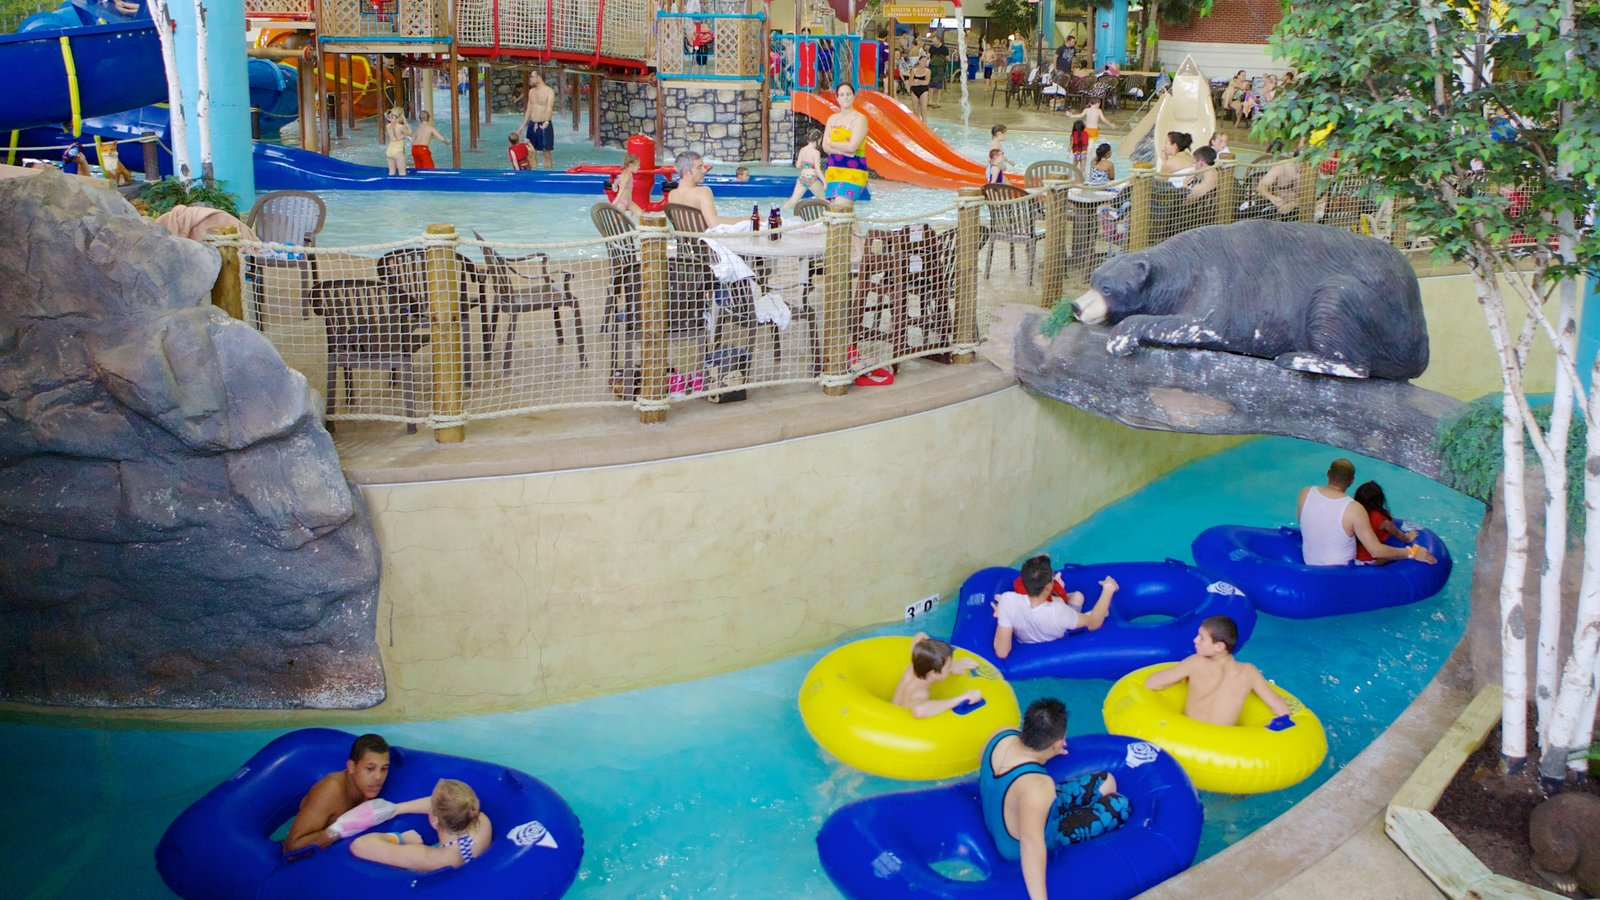 Water Park Of America Which Includes A Luxury Hotel Or Resort Rides And Waterpark